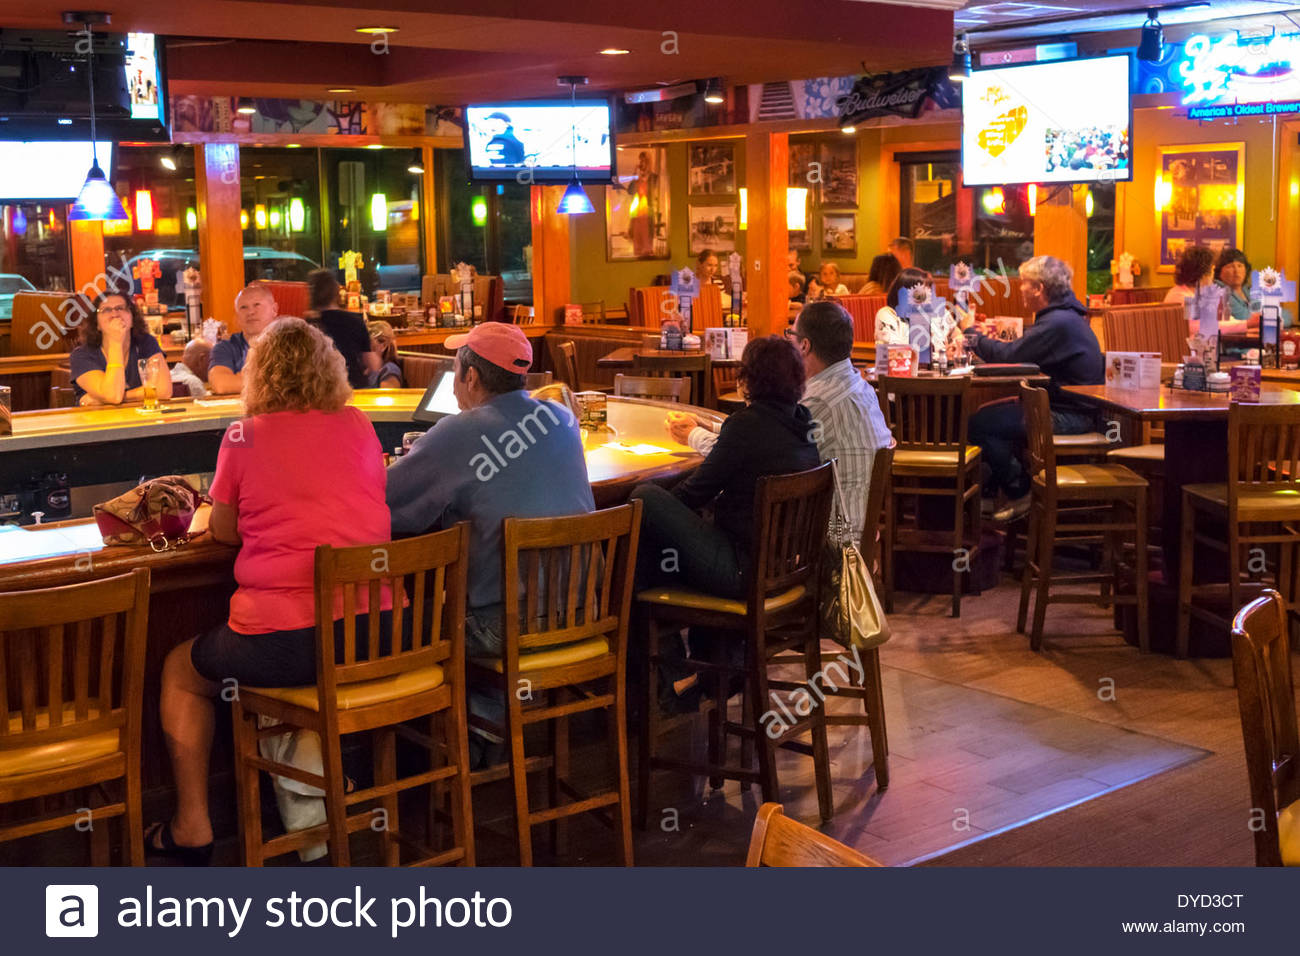 port charlotte florida applebee's restaurant inside interior bar